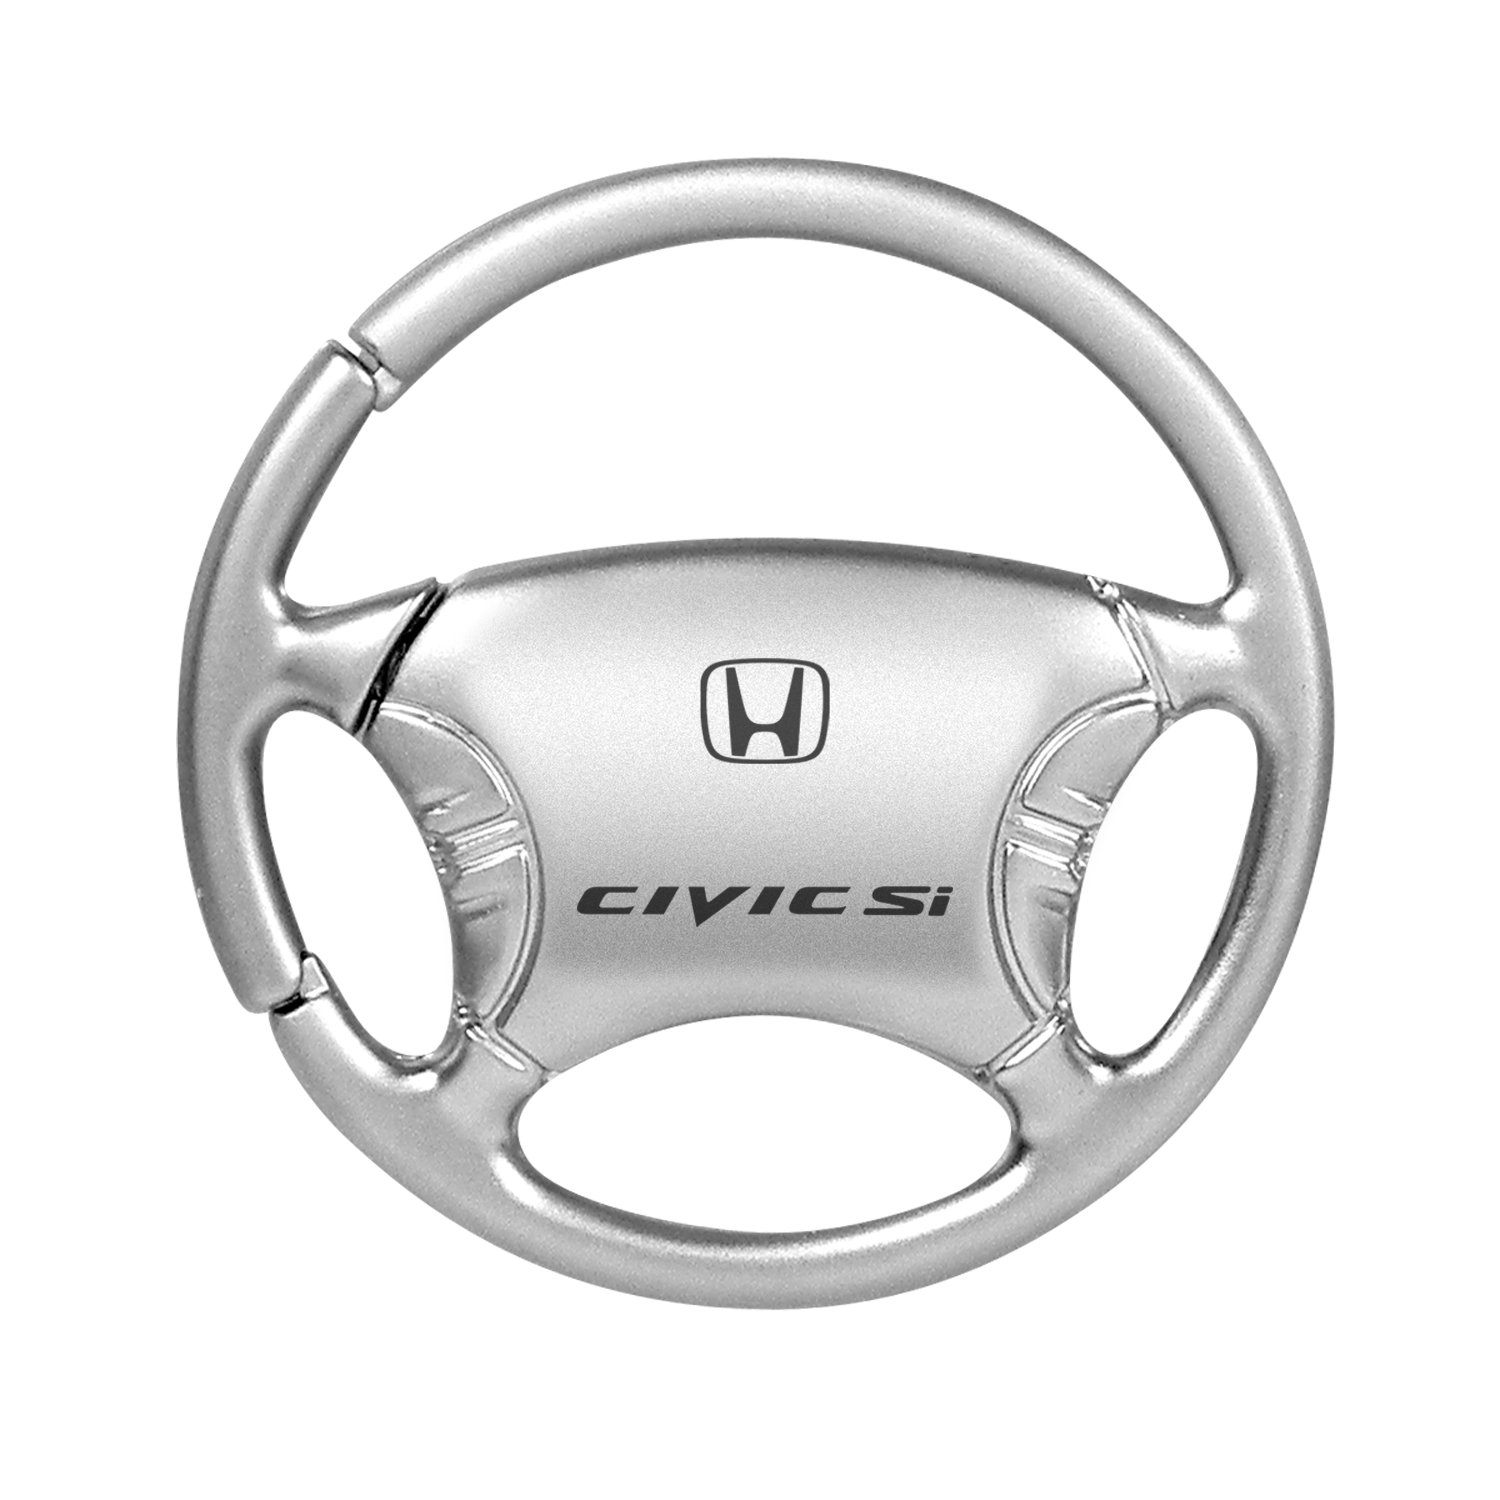 Steering Wheel Keychain /& Keyring with Honda Civic SI Logo